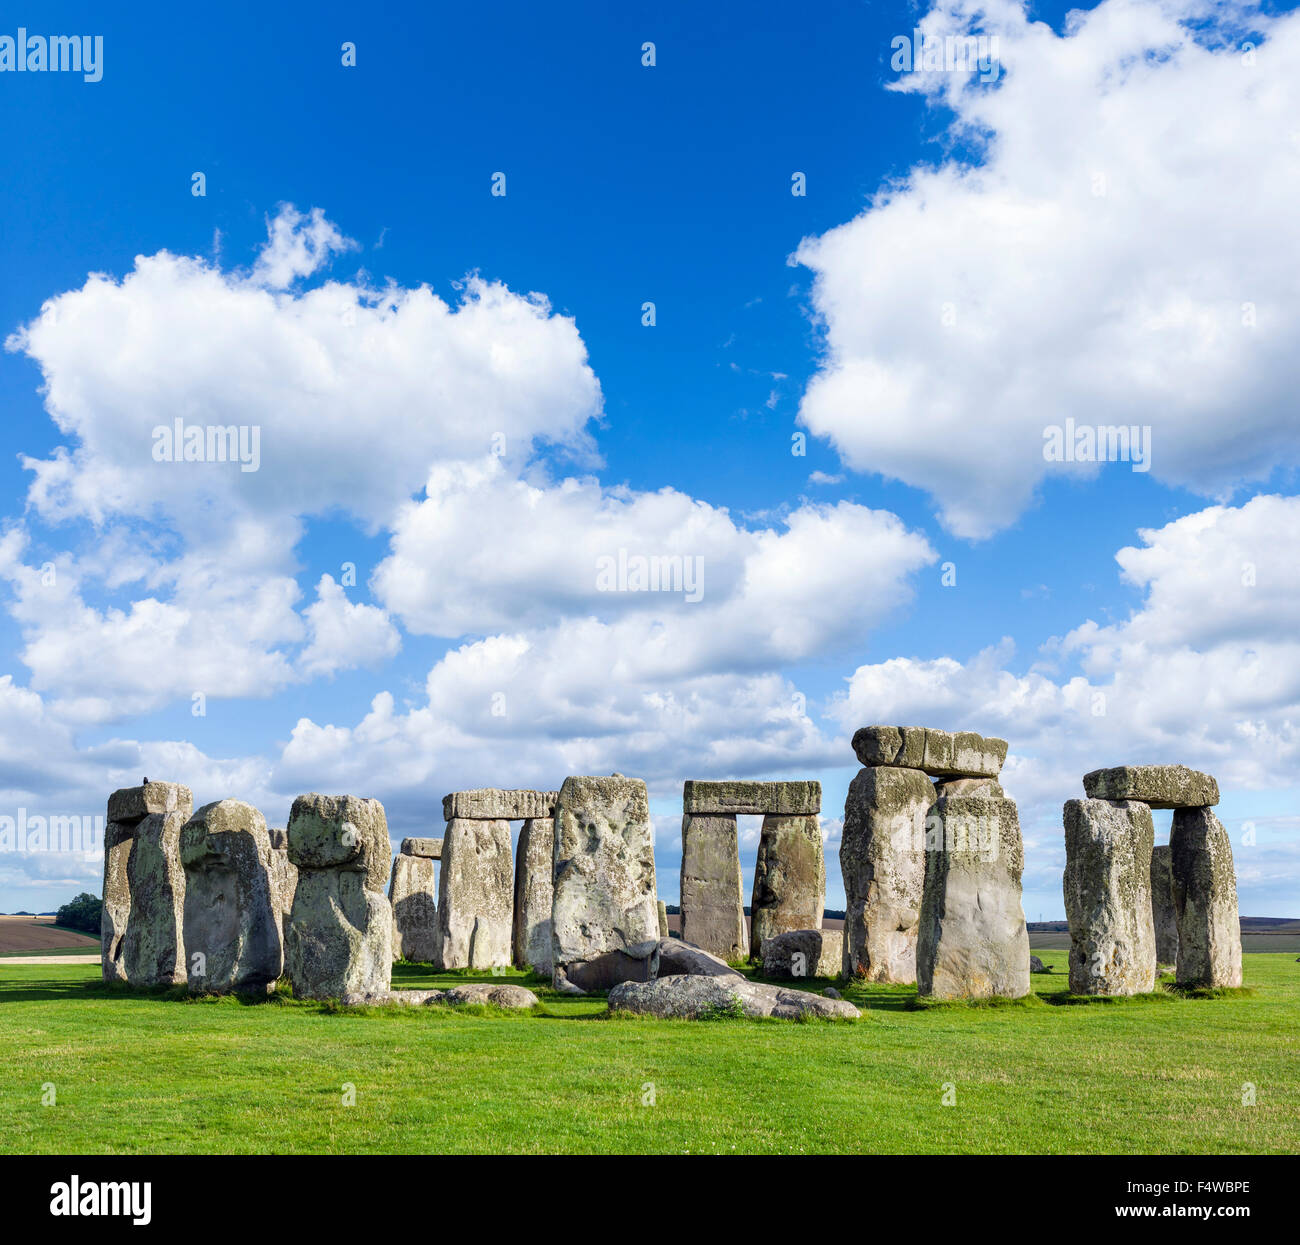 Stonehenge, près de Amesbury, Wiltshire, England, UK Photo Stock